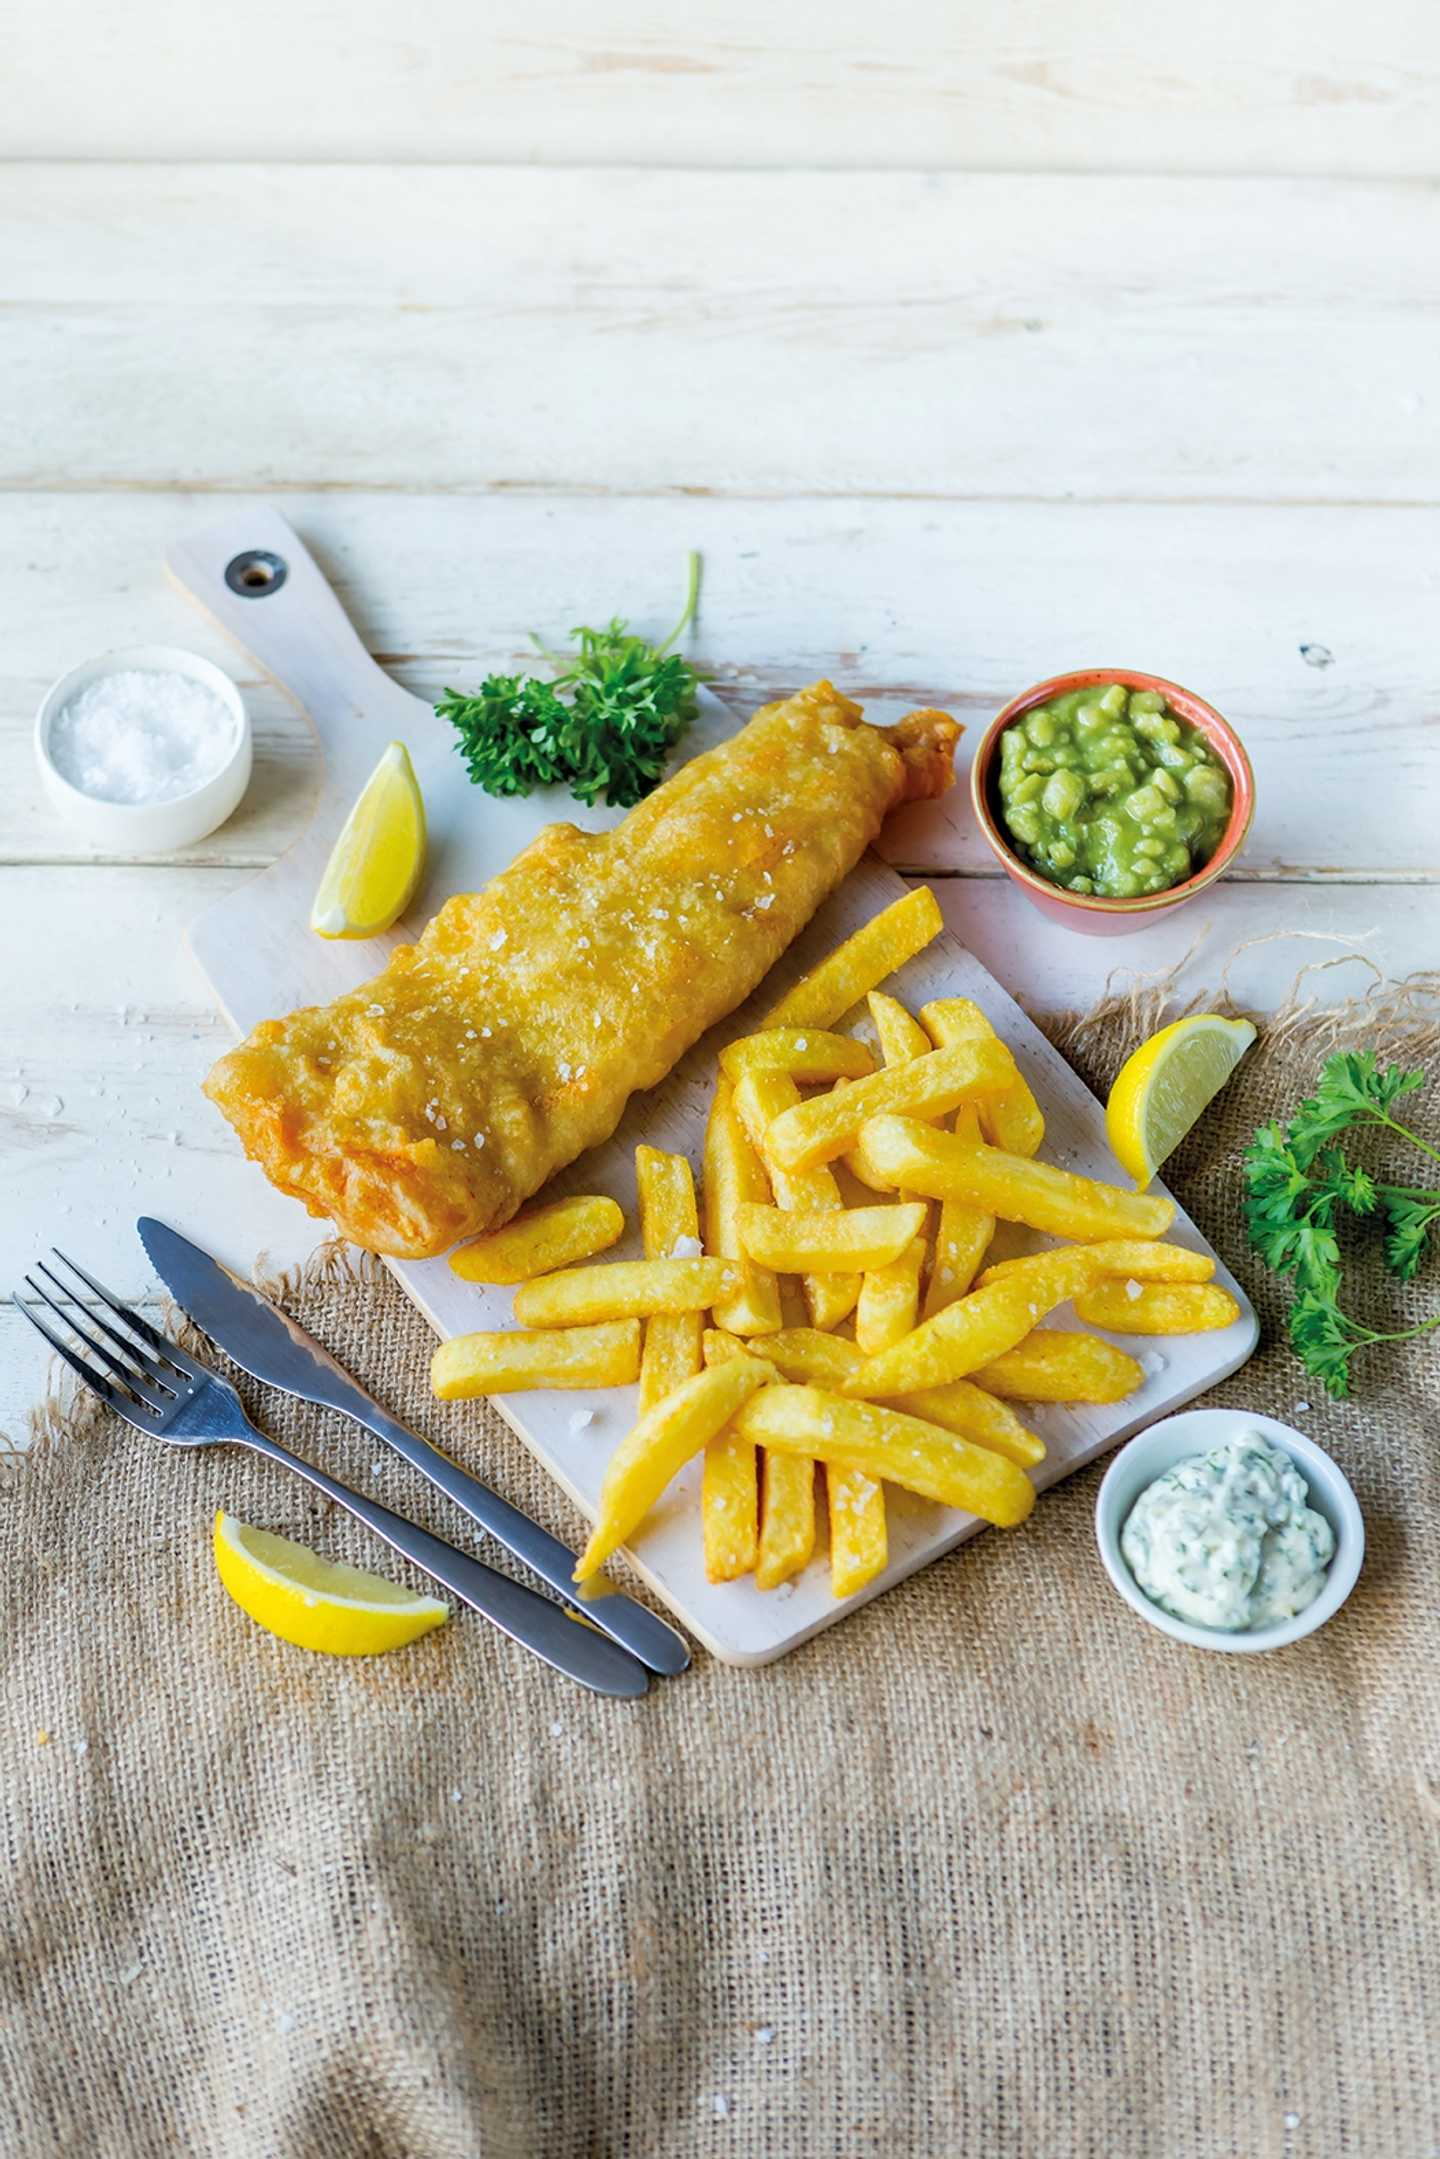 Example image of Cook's fish and chip shop